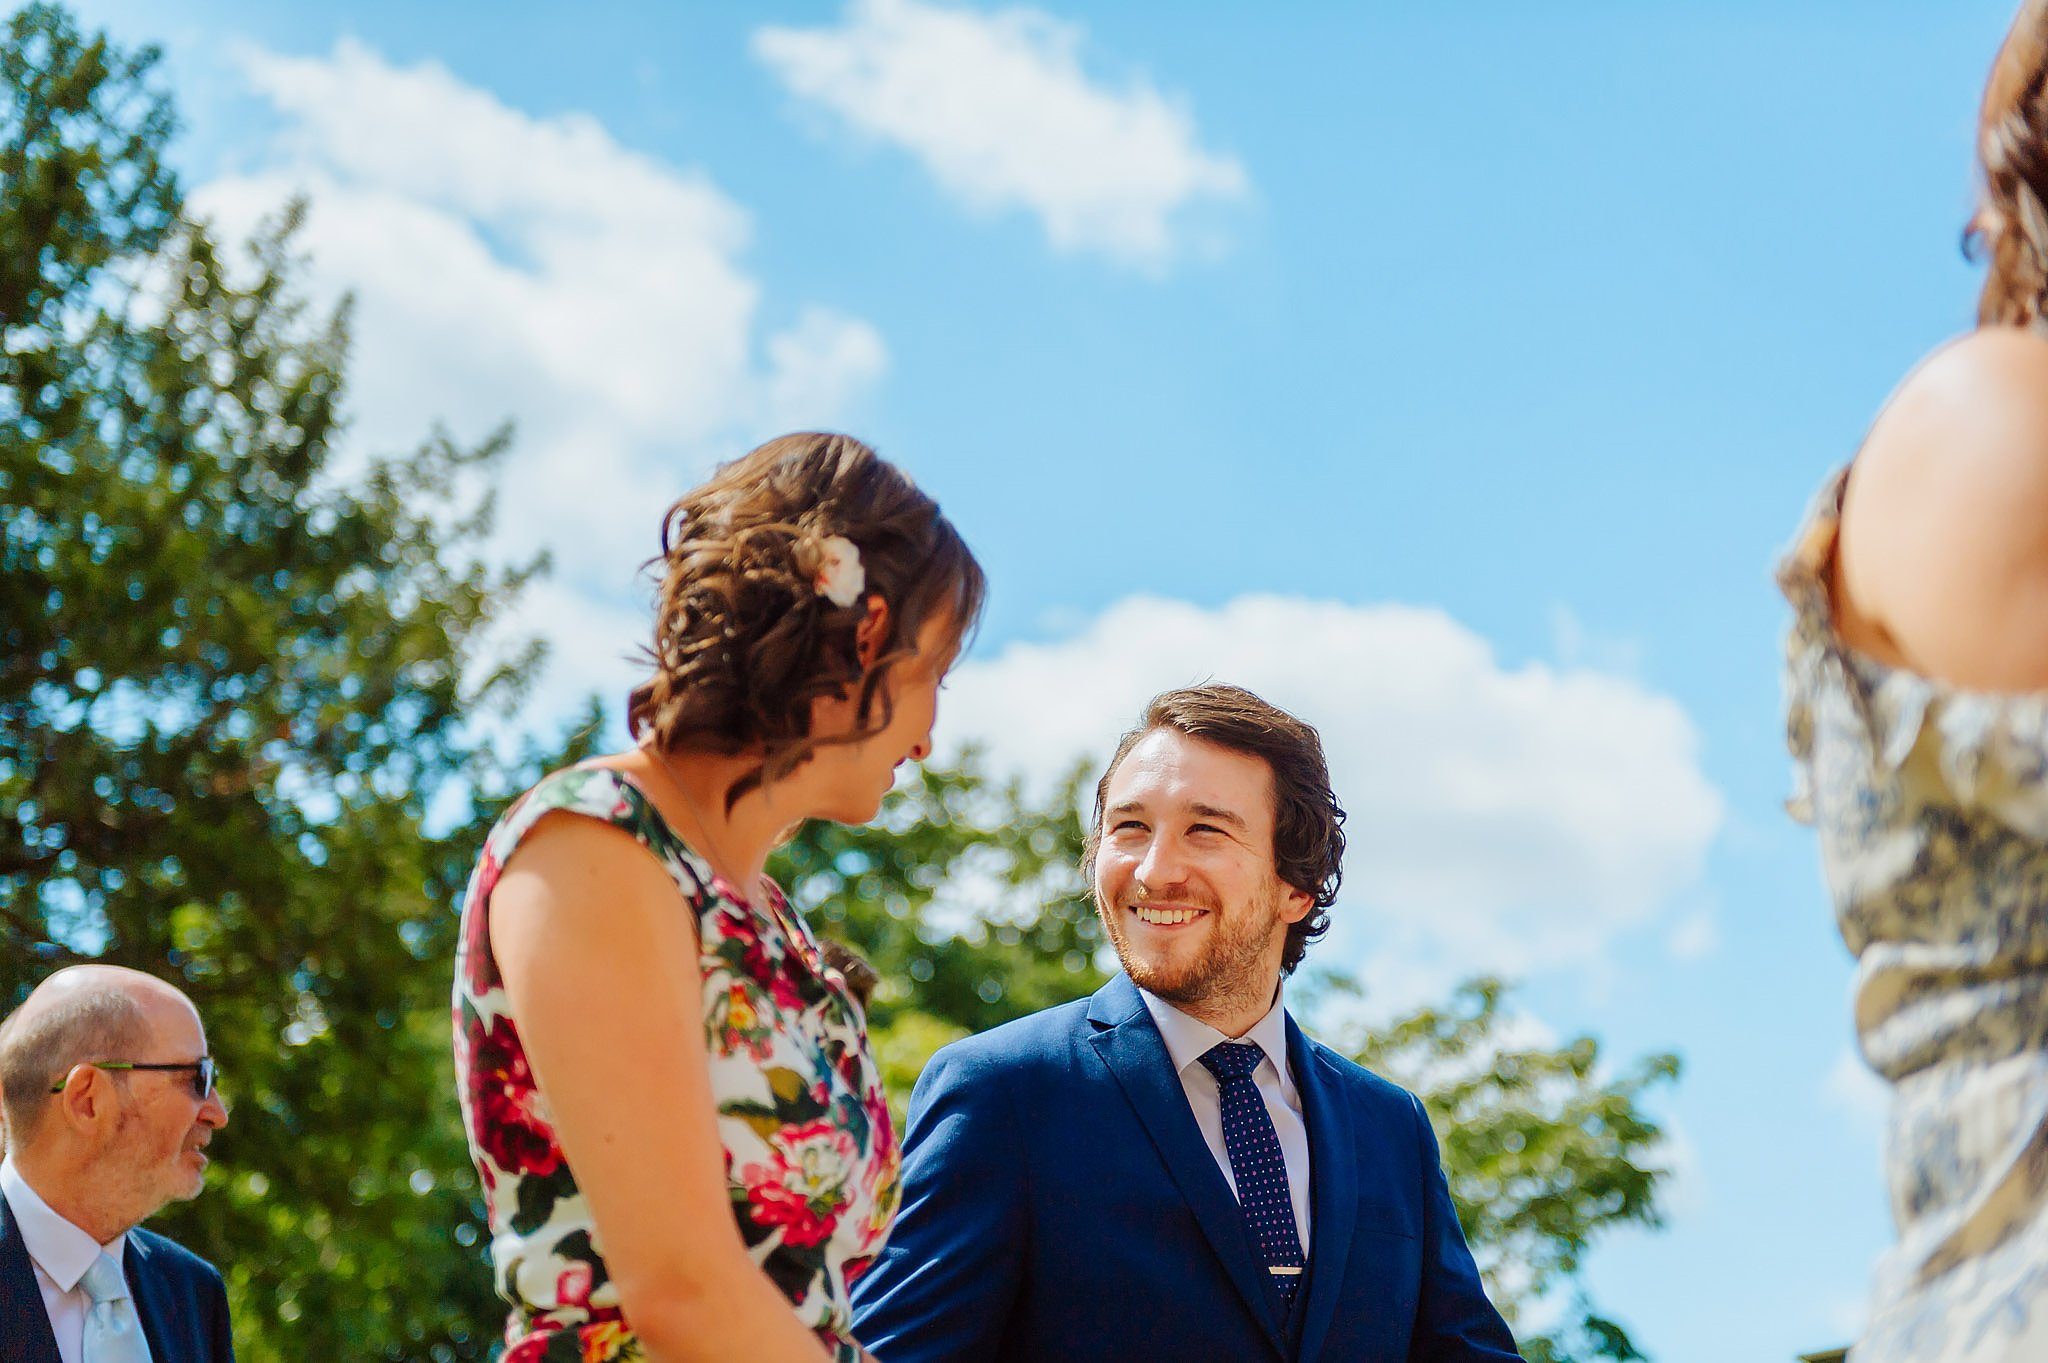 Wedding photography at Hellens Manor in Herefordshire, West Midlands | Shelley + Ian 19